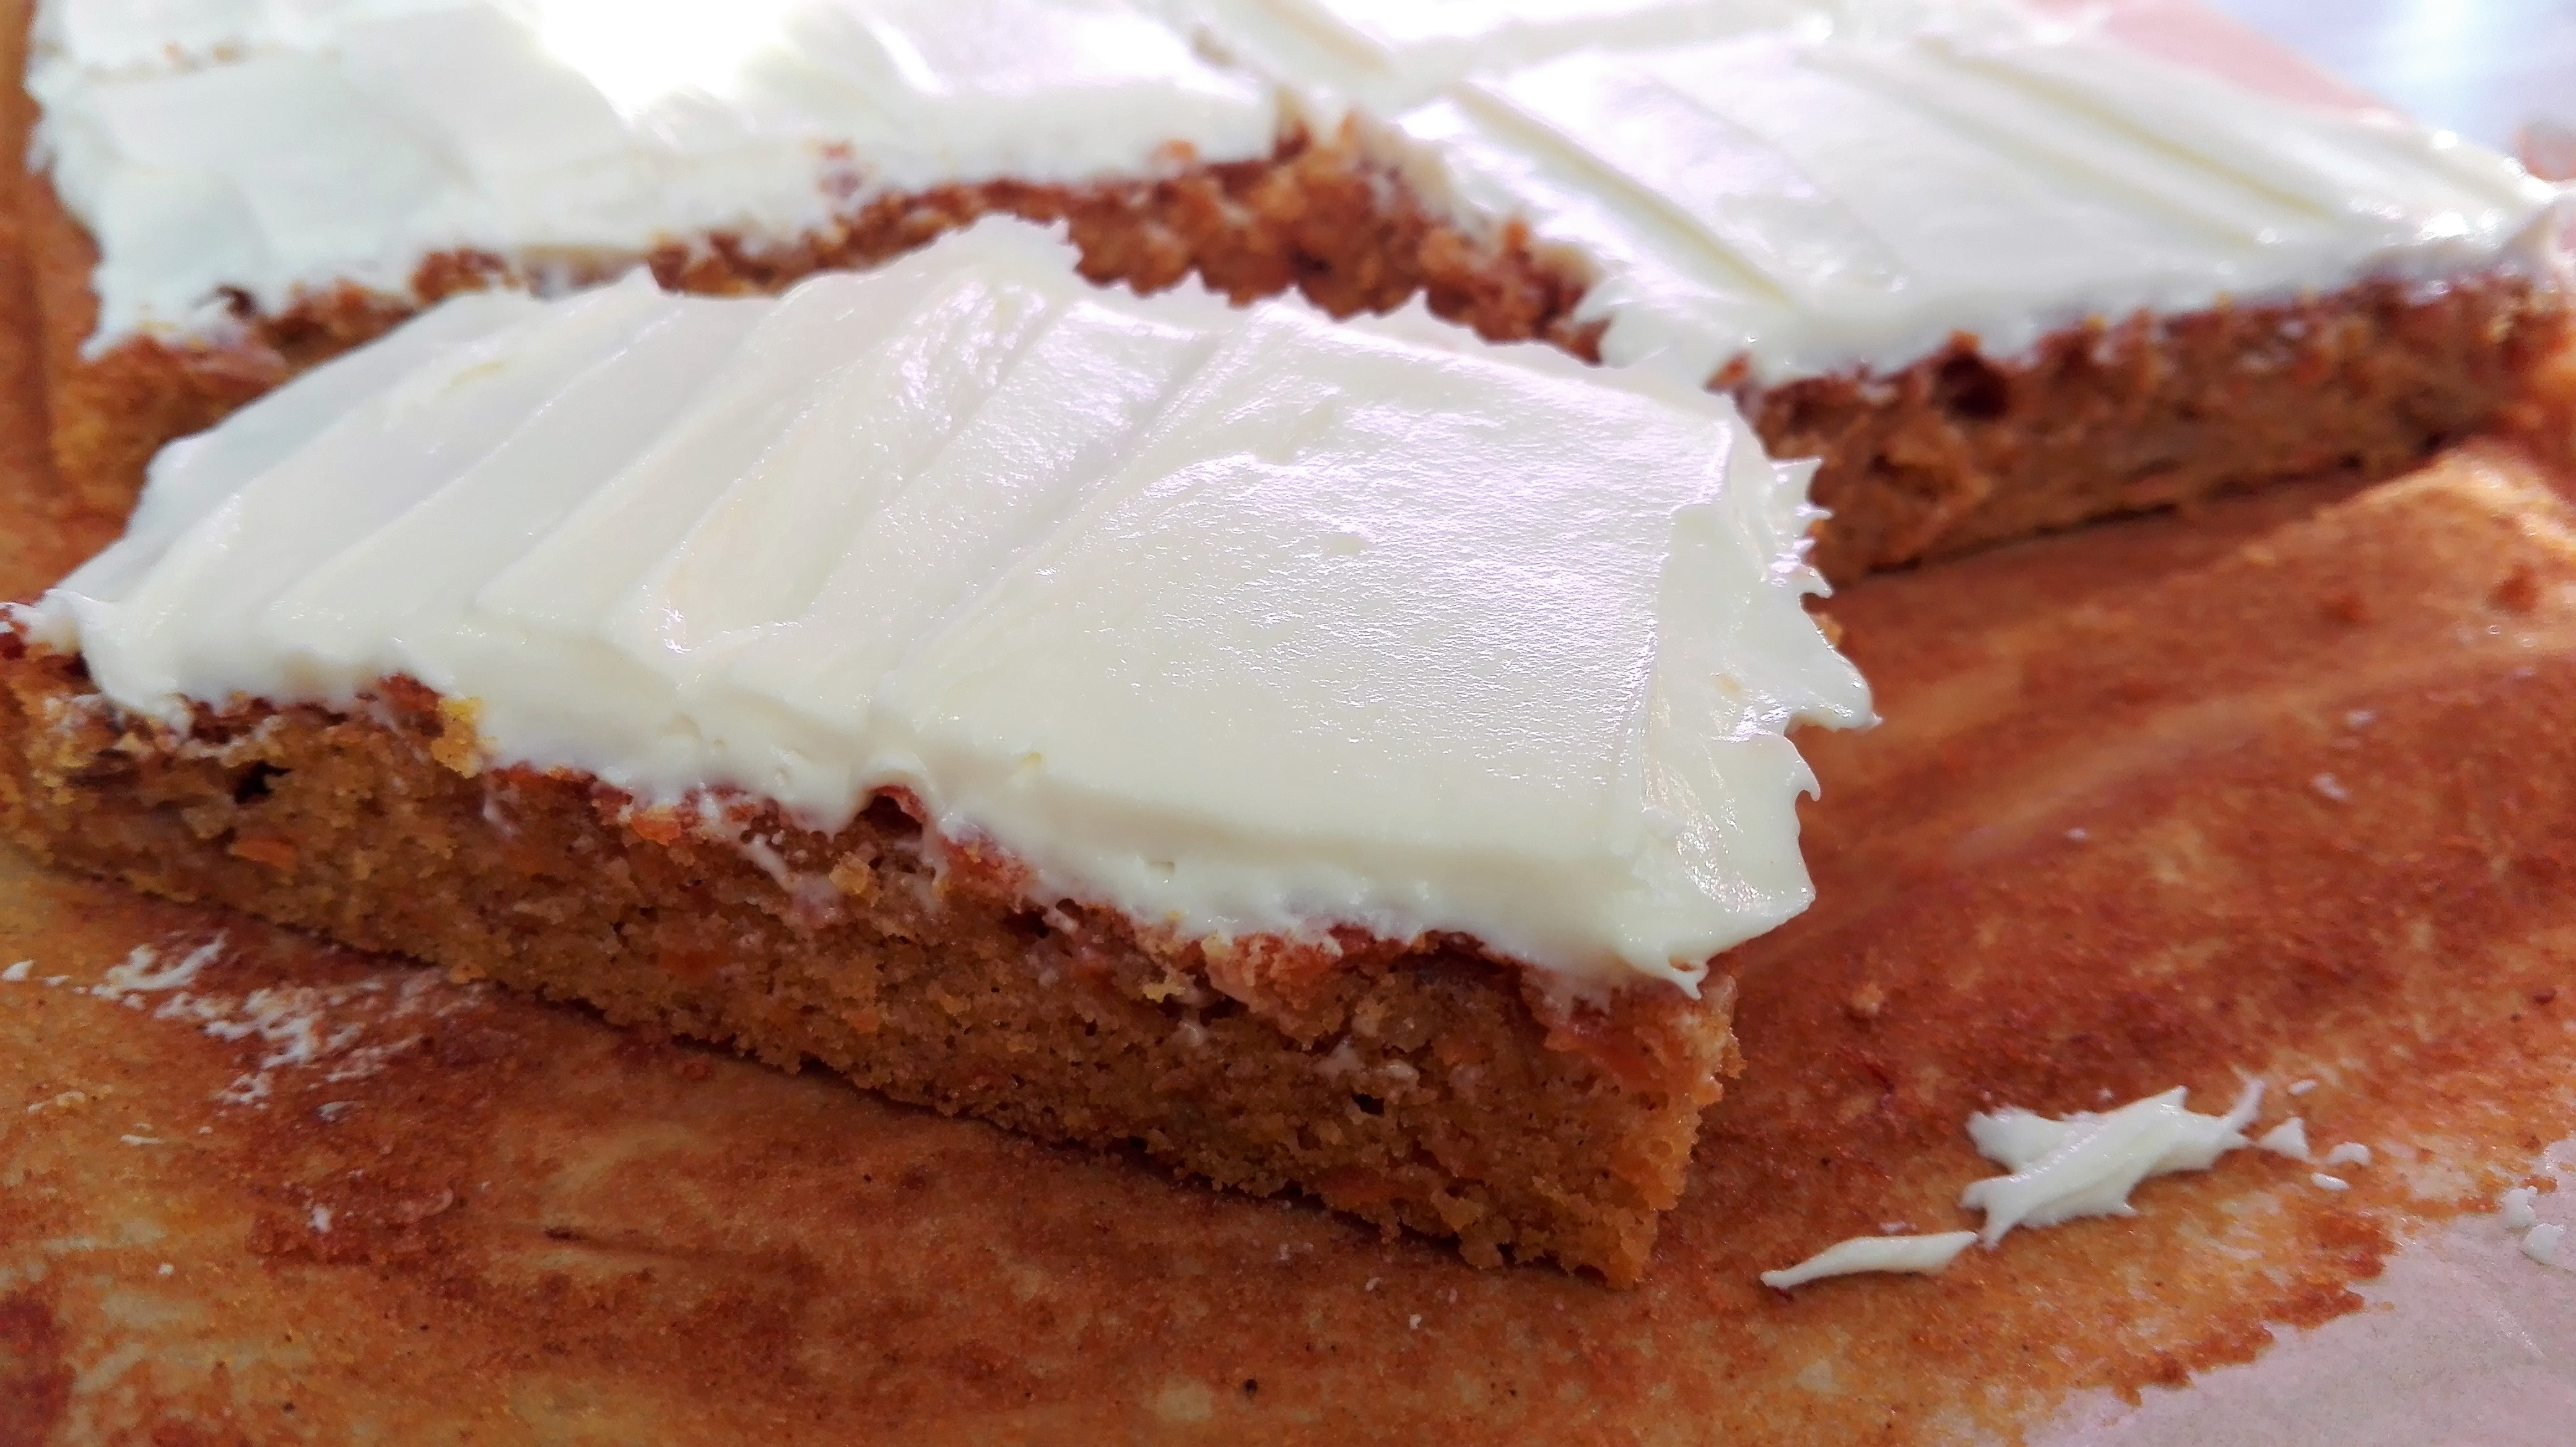 slice of gluten free carrot cake traybake with cream cheese frosting